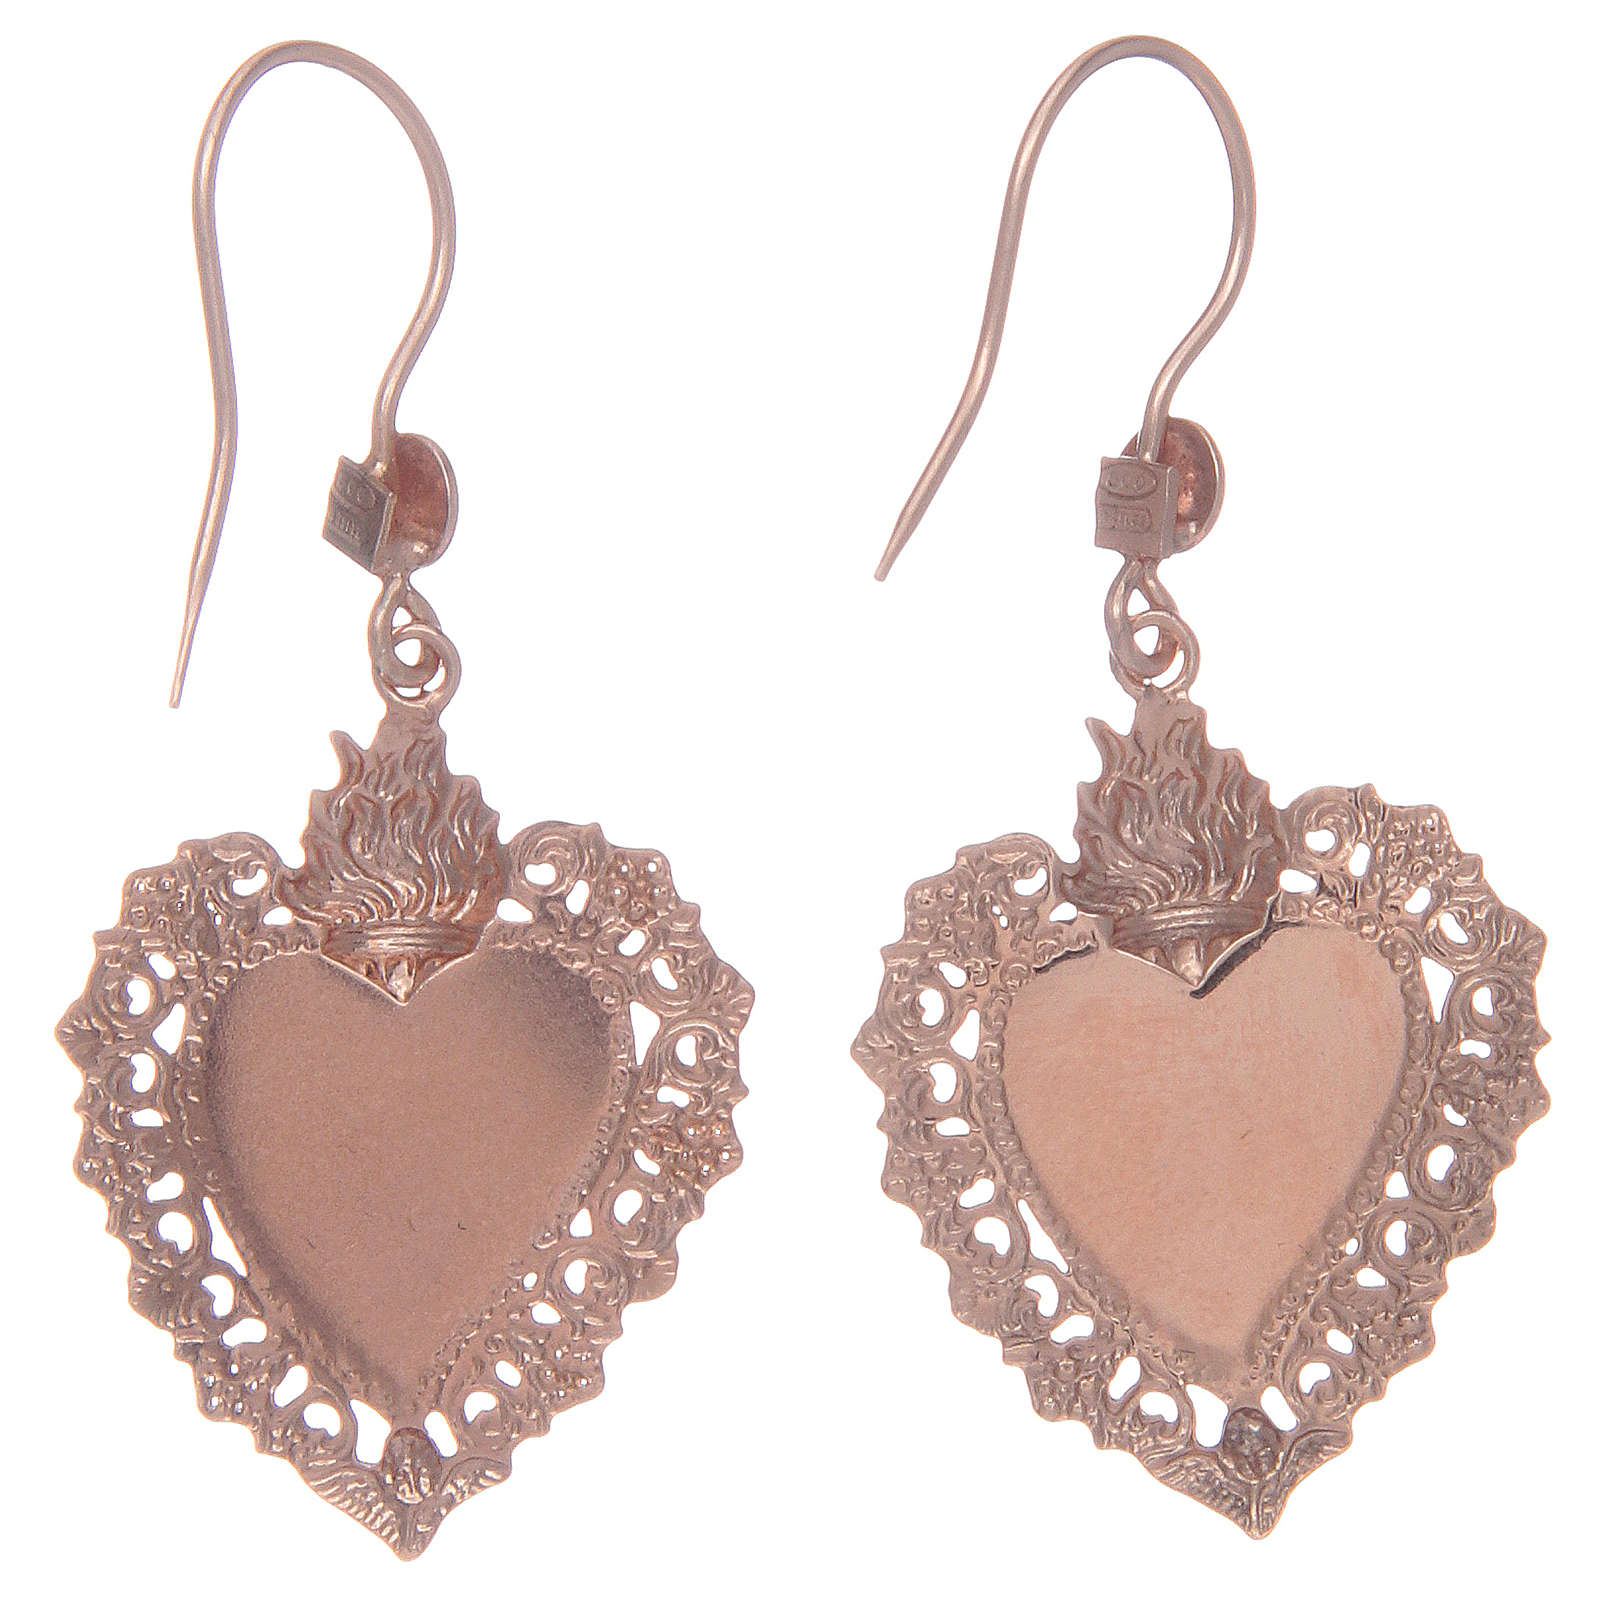 925 sterling silver pendant earrings with votive heart rosè 4